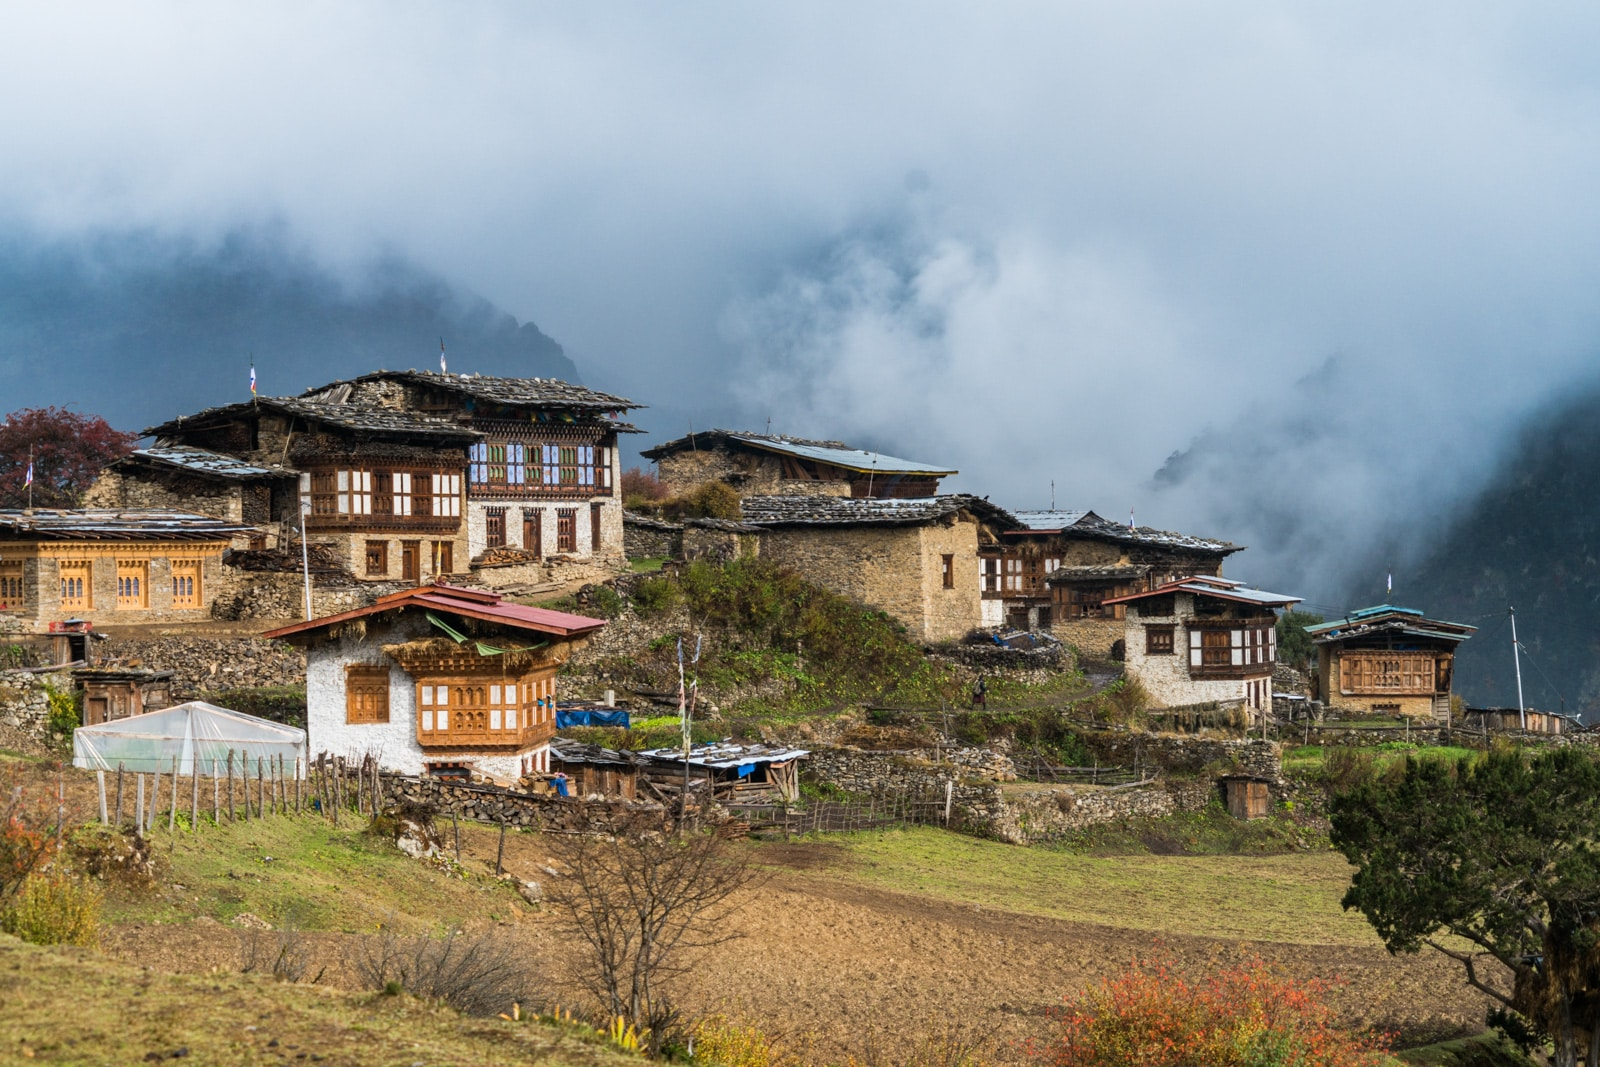 Photos of the Royal Highlander Festival in Bhutan - Laya settlement in the clouds - Lost With Purpose travel blog